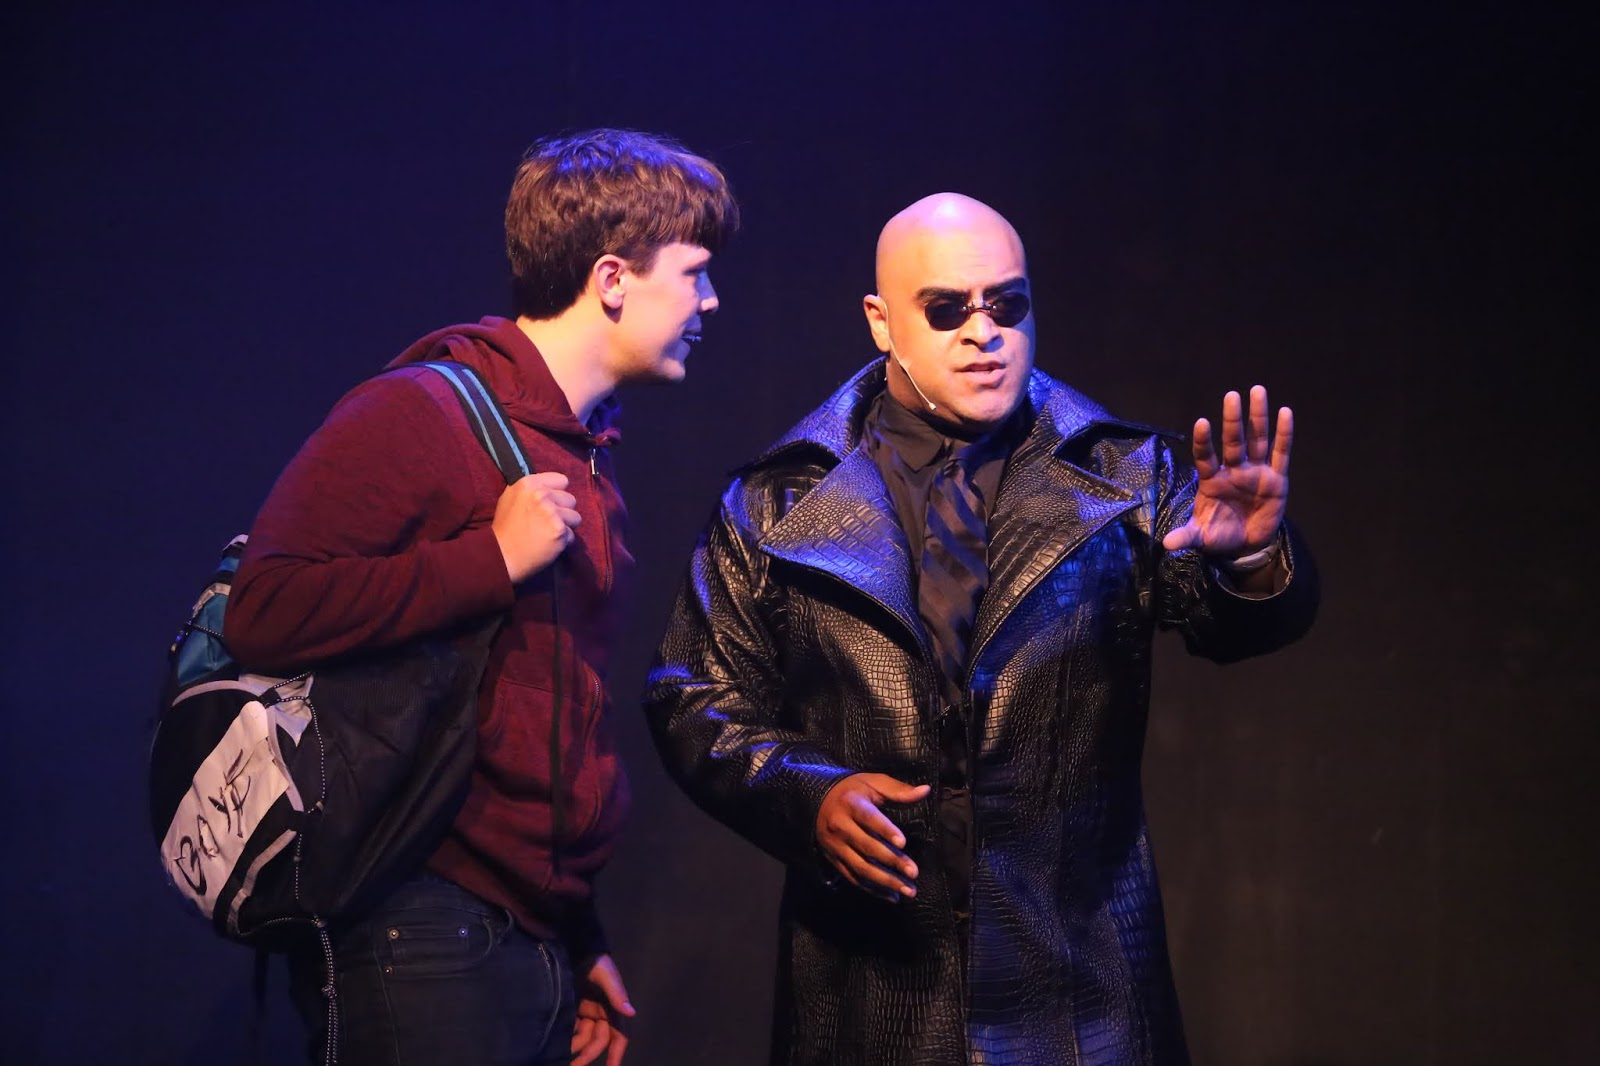 The Bad Boy of Musical Theatre: The Loudest One is Ours